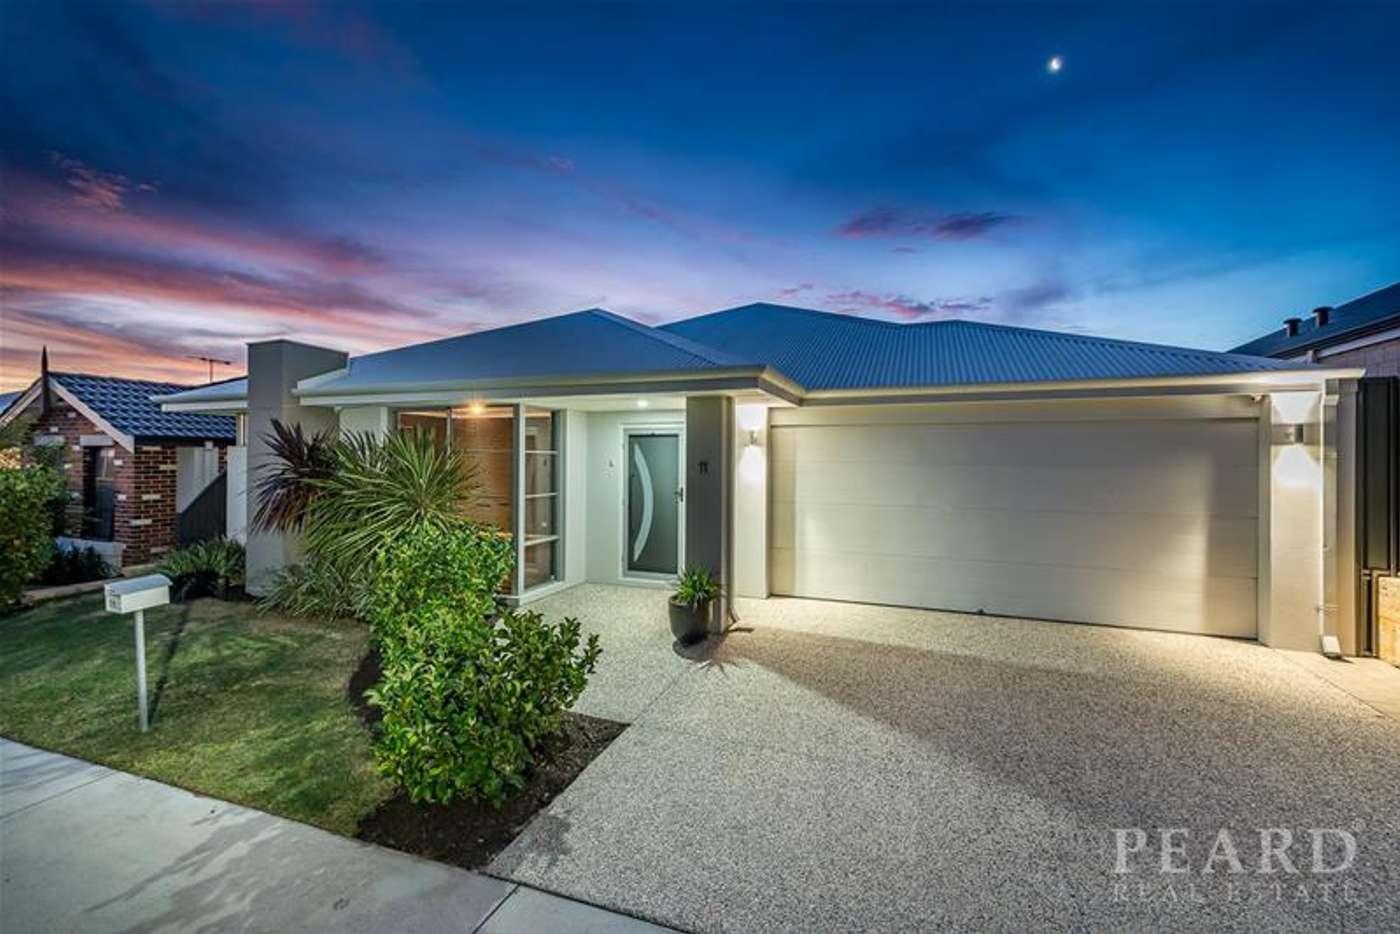 Main view of Homely house listing, 11 Brassie Terrace, Yanchep WA 6035